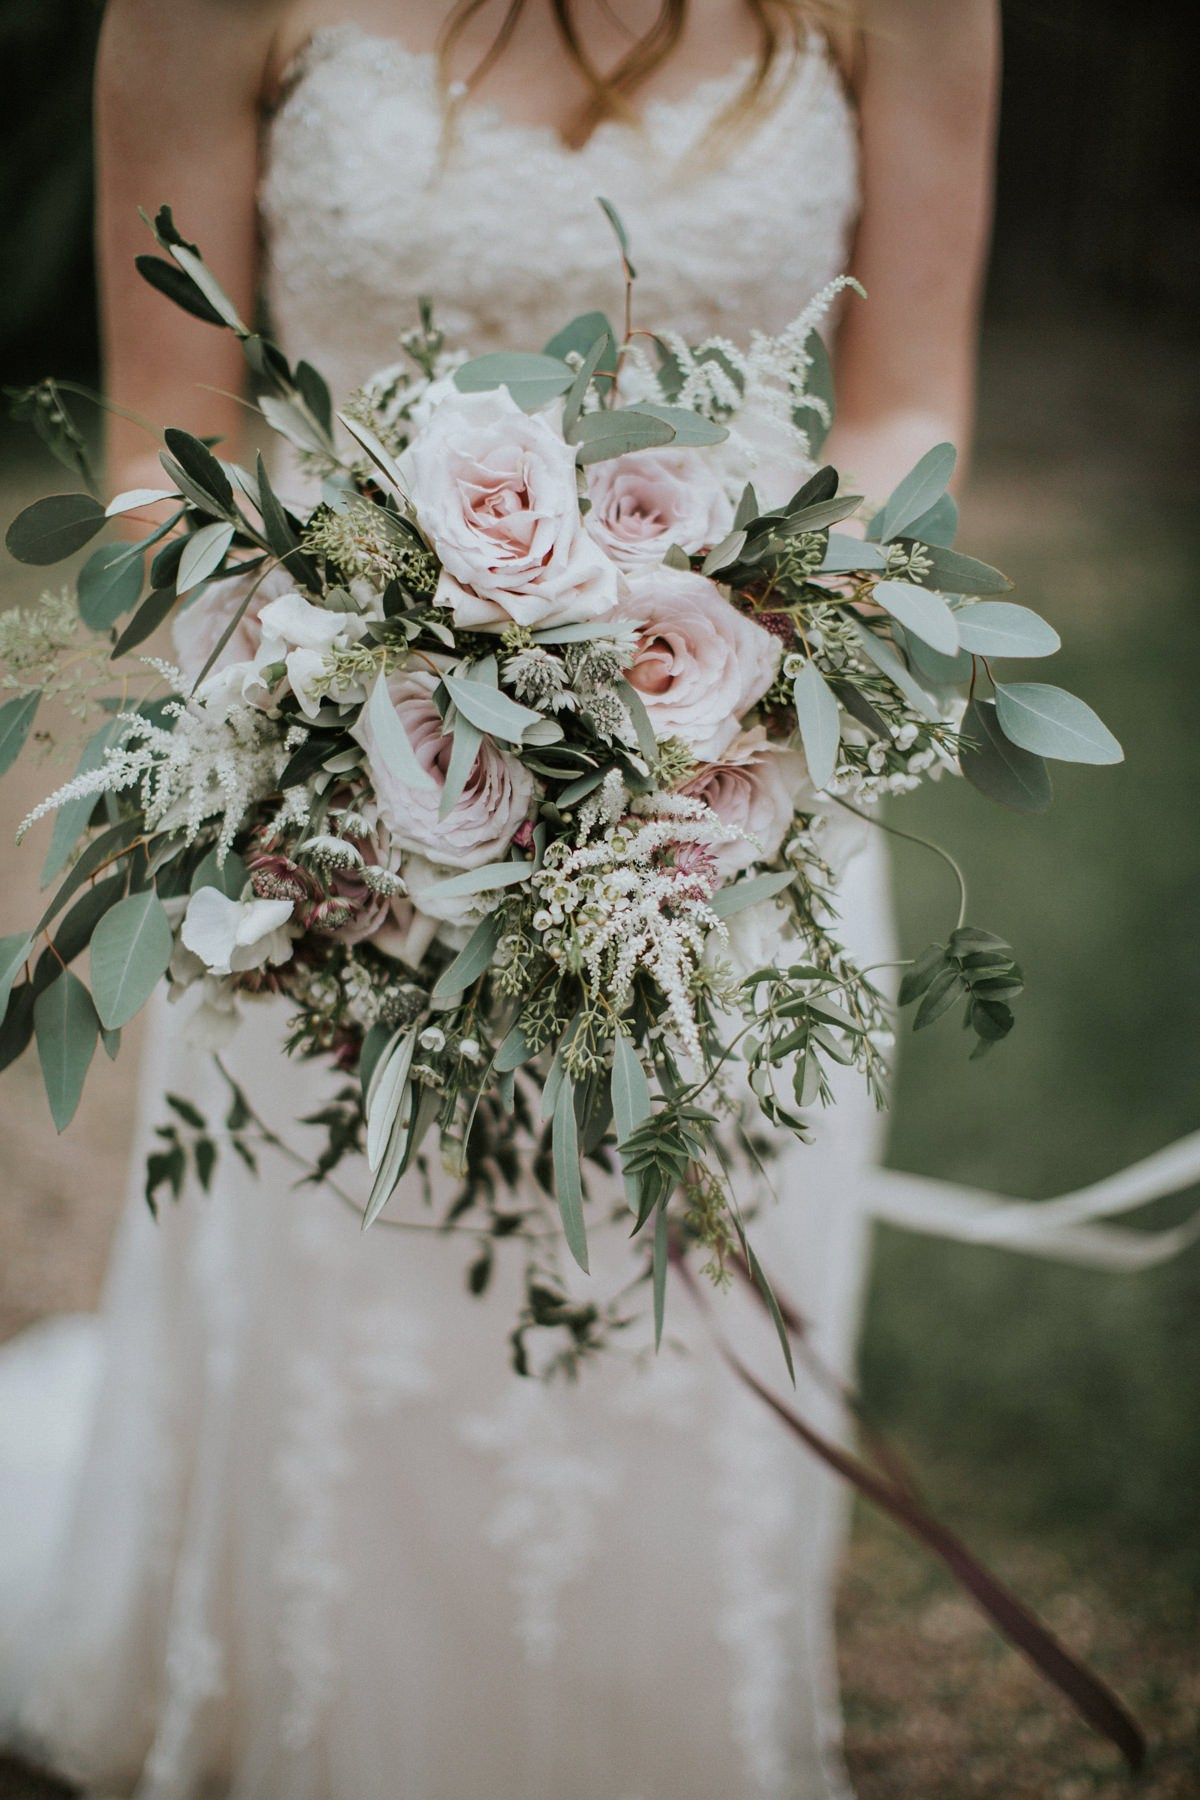 Rustic wedding bouquet with pink roses